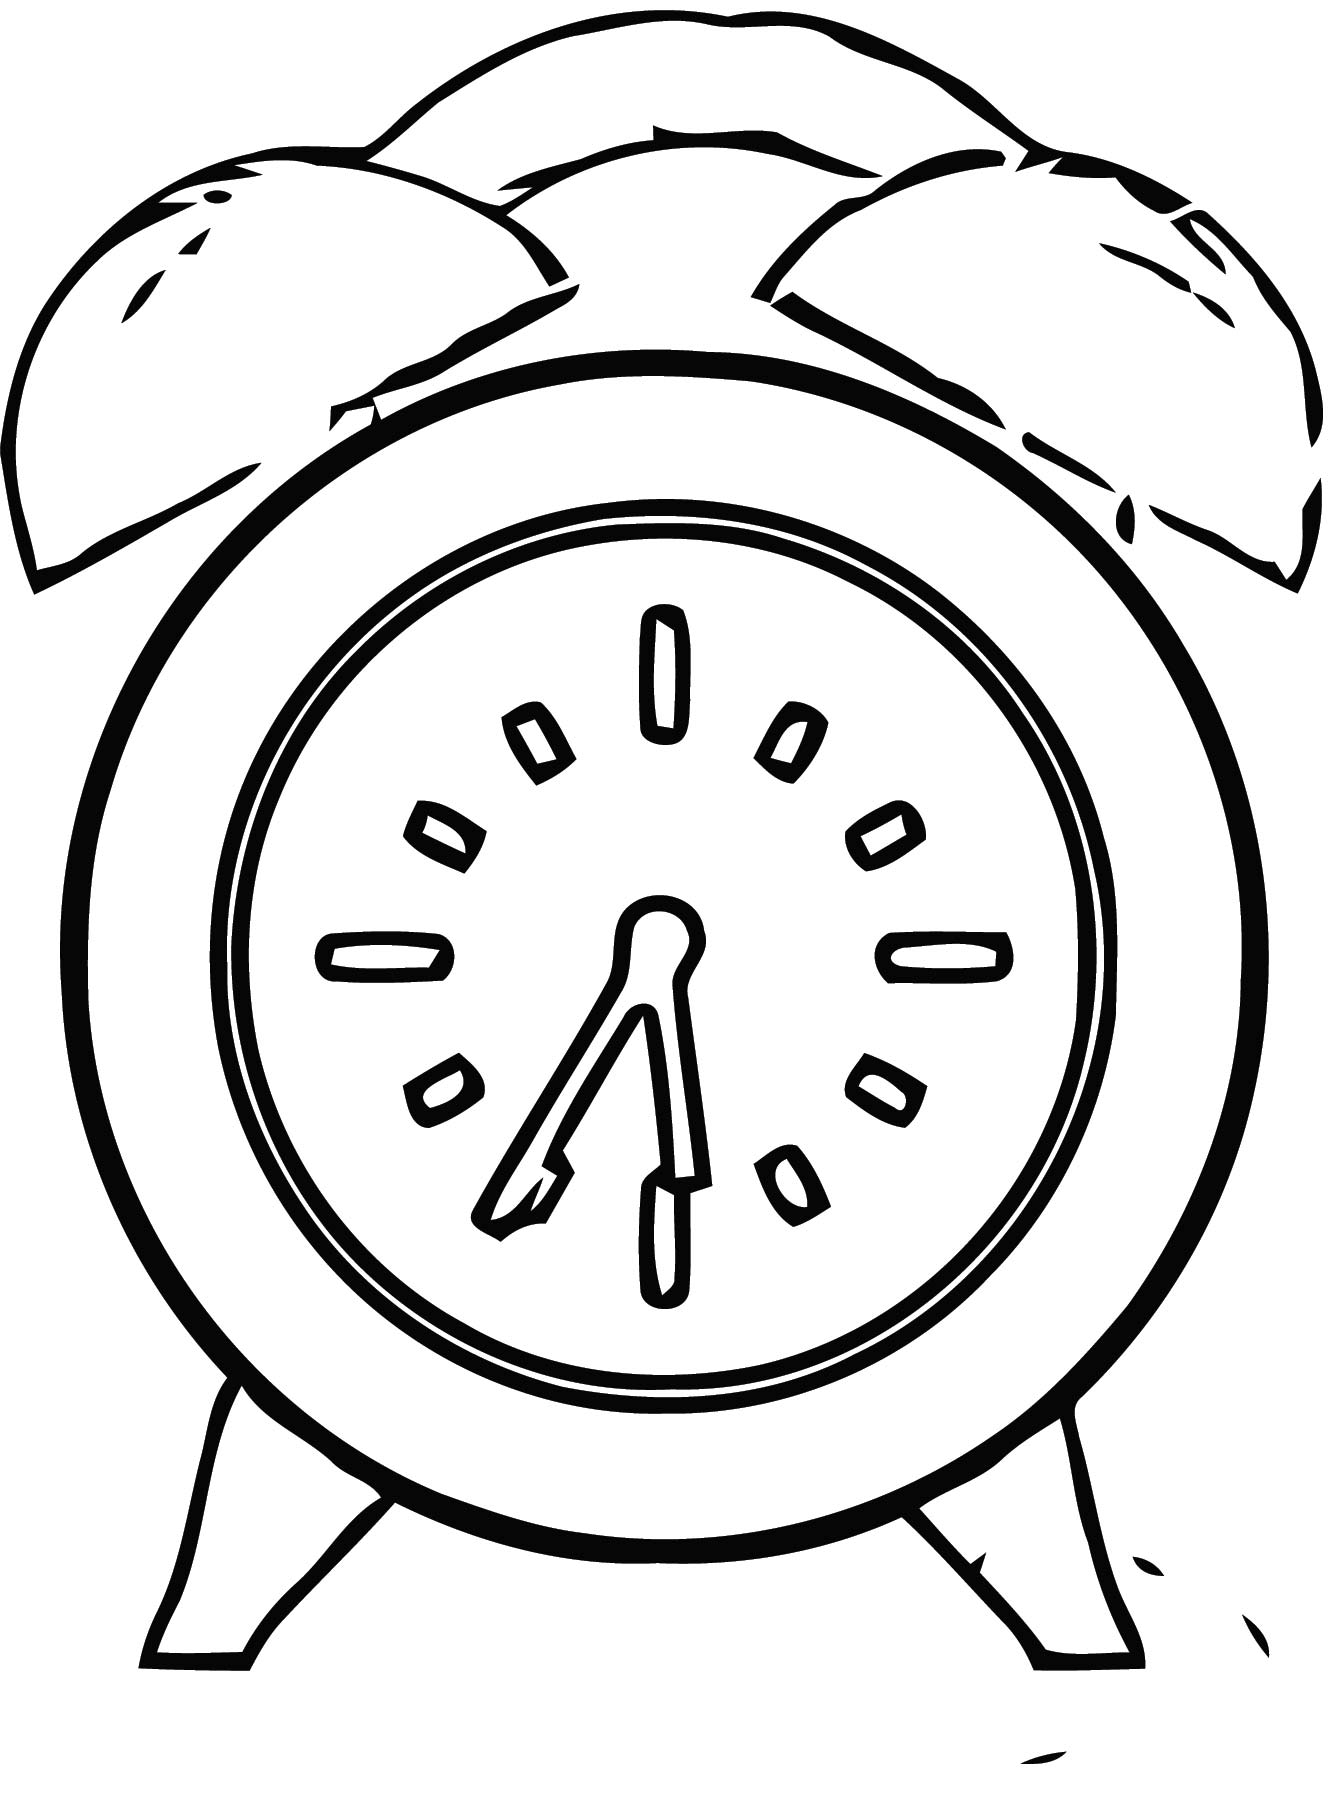 Images Free Printable 3 Cartoonized Free Printable Coloring Page